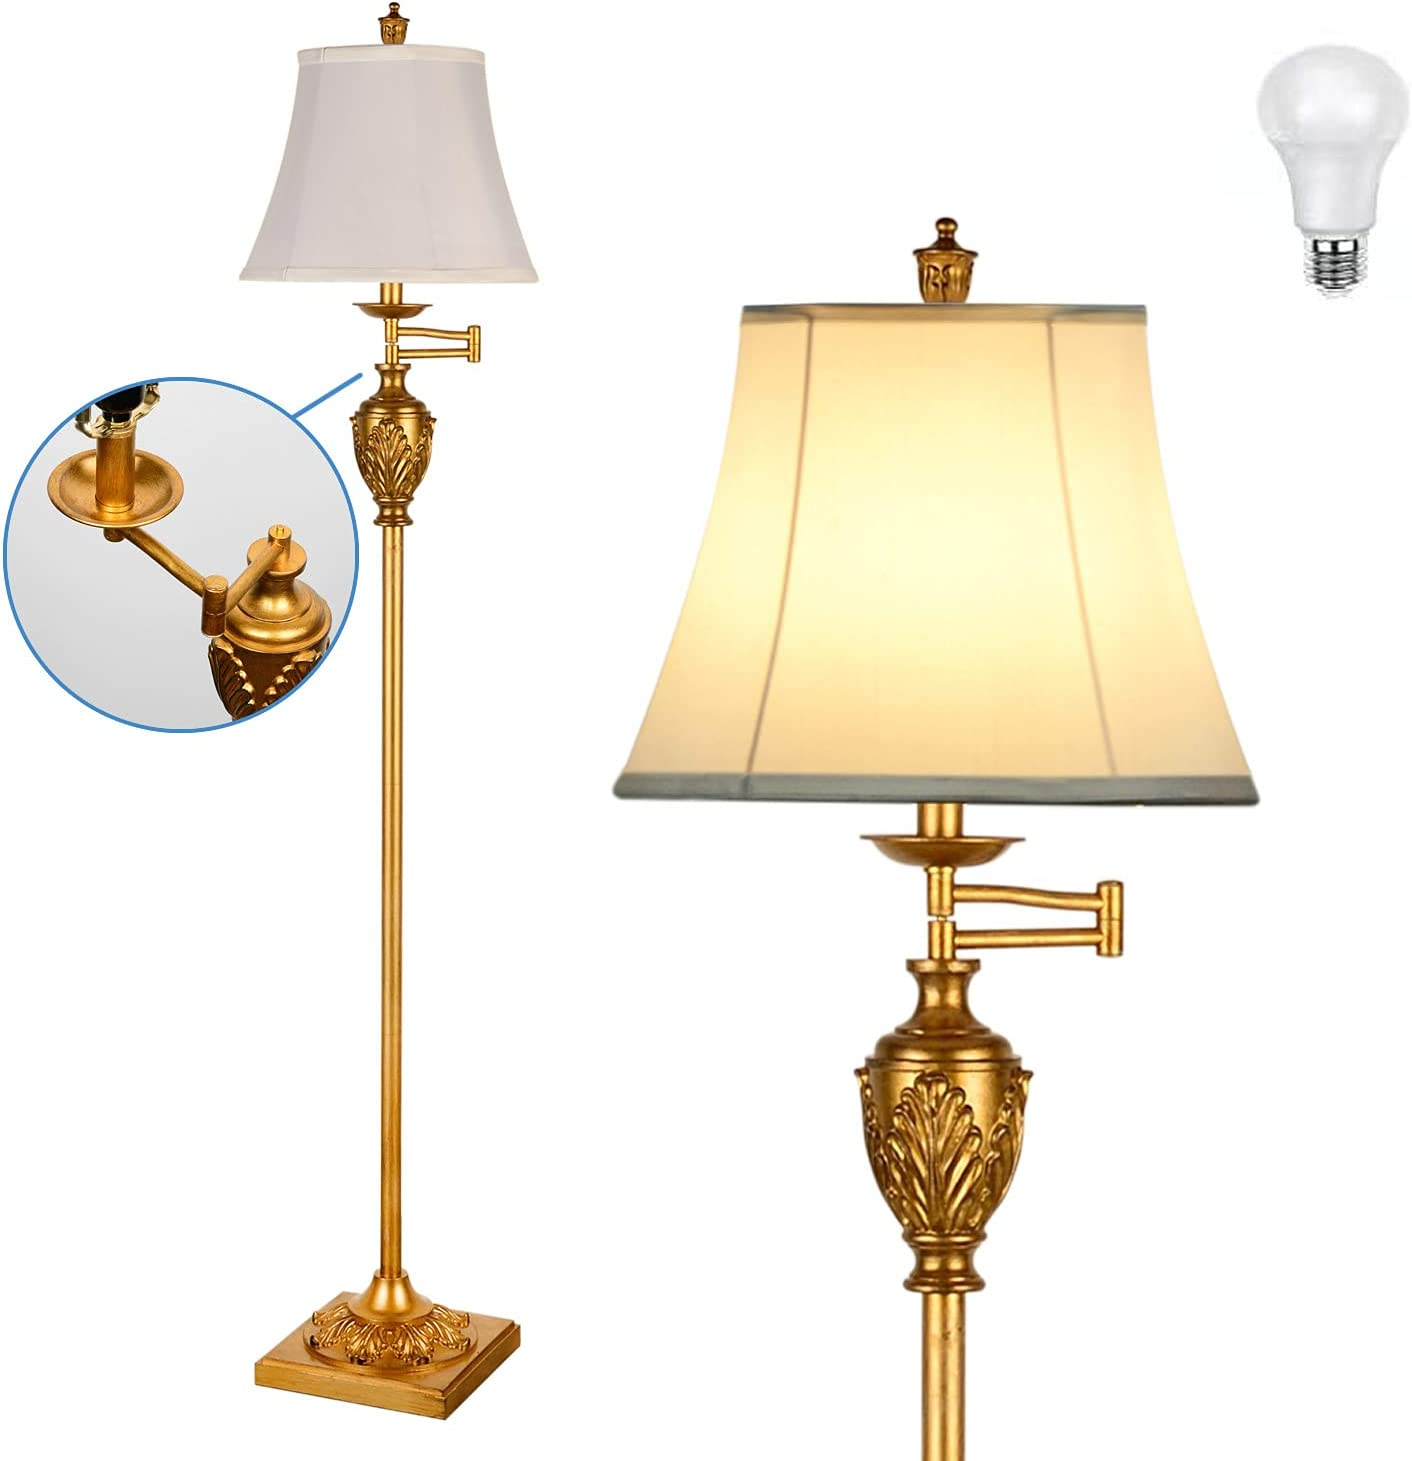 Traditional LED Floor Lamp 350° Swing Arm Standing Virginia Beach Max 61% OFF Mall Adjustable